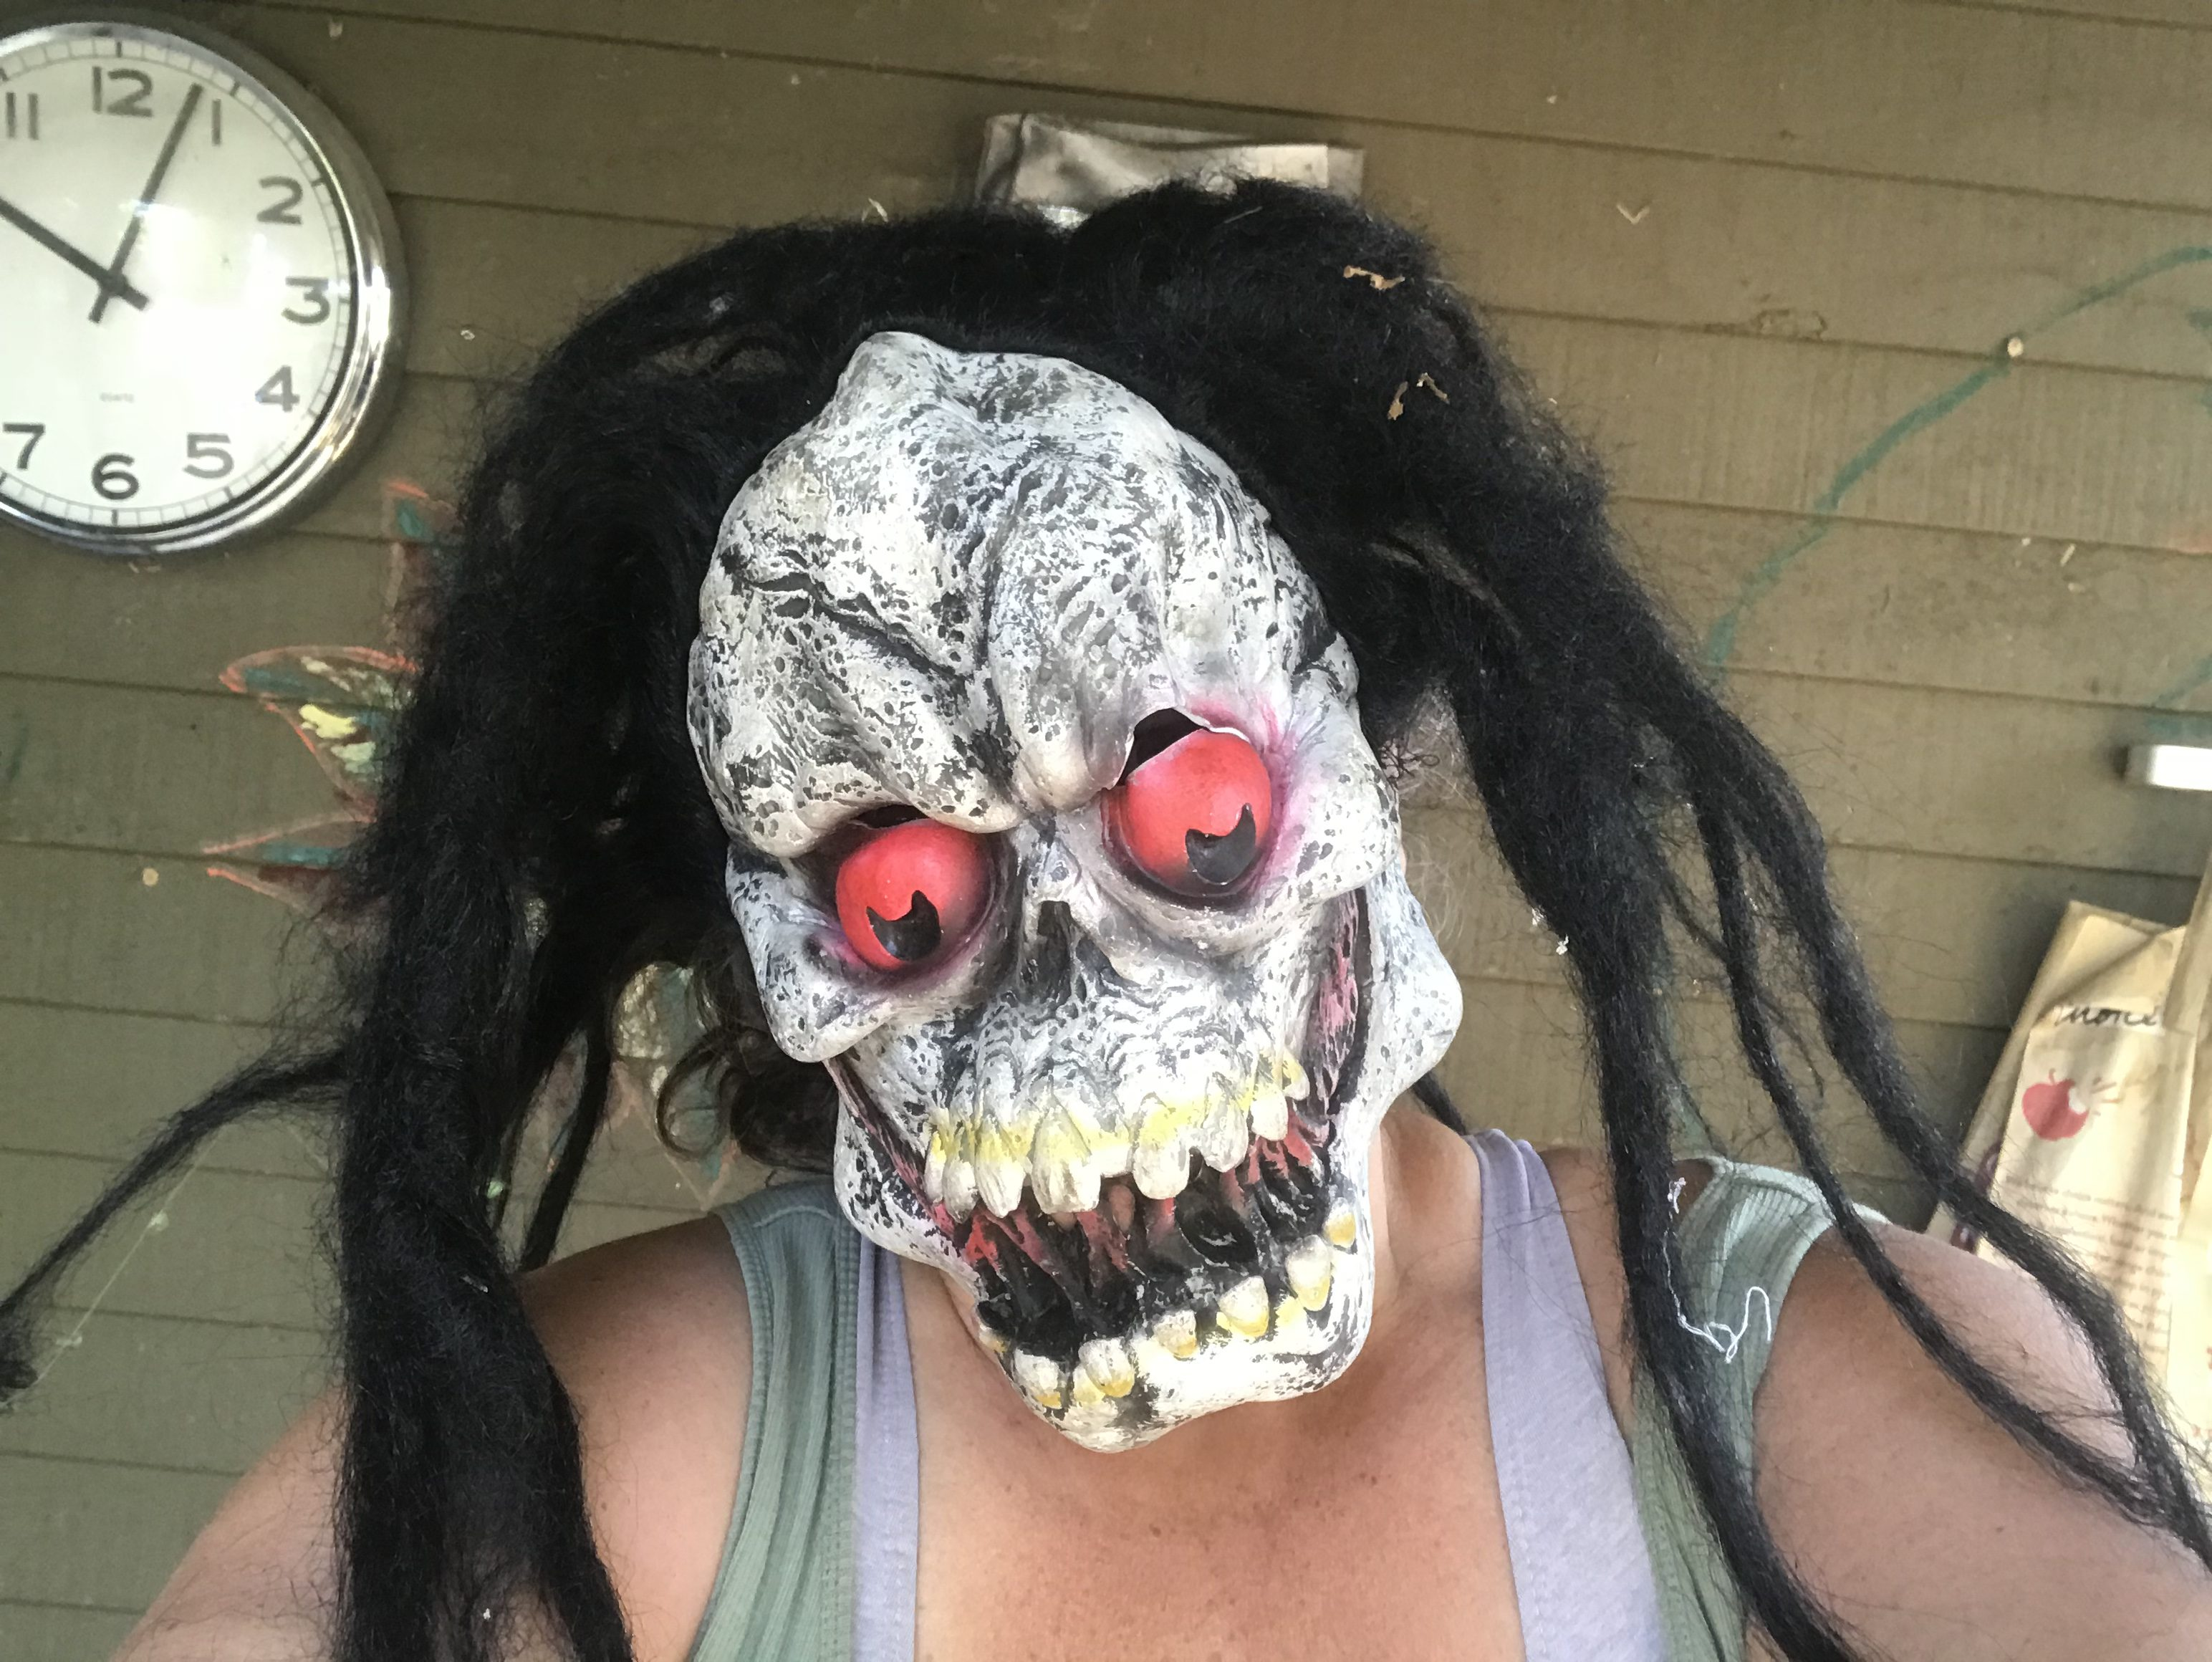 asktamara: does my scary zombie halloween mask have unsafe levels of